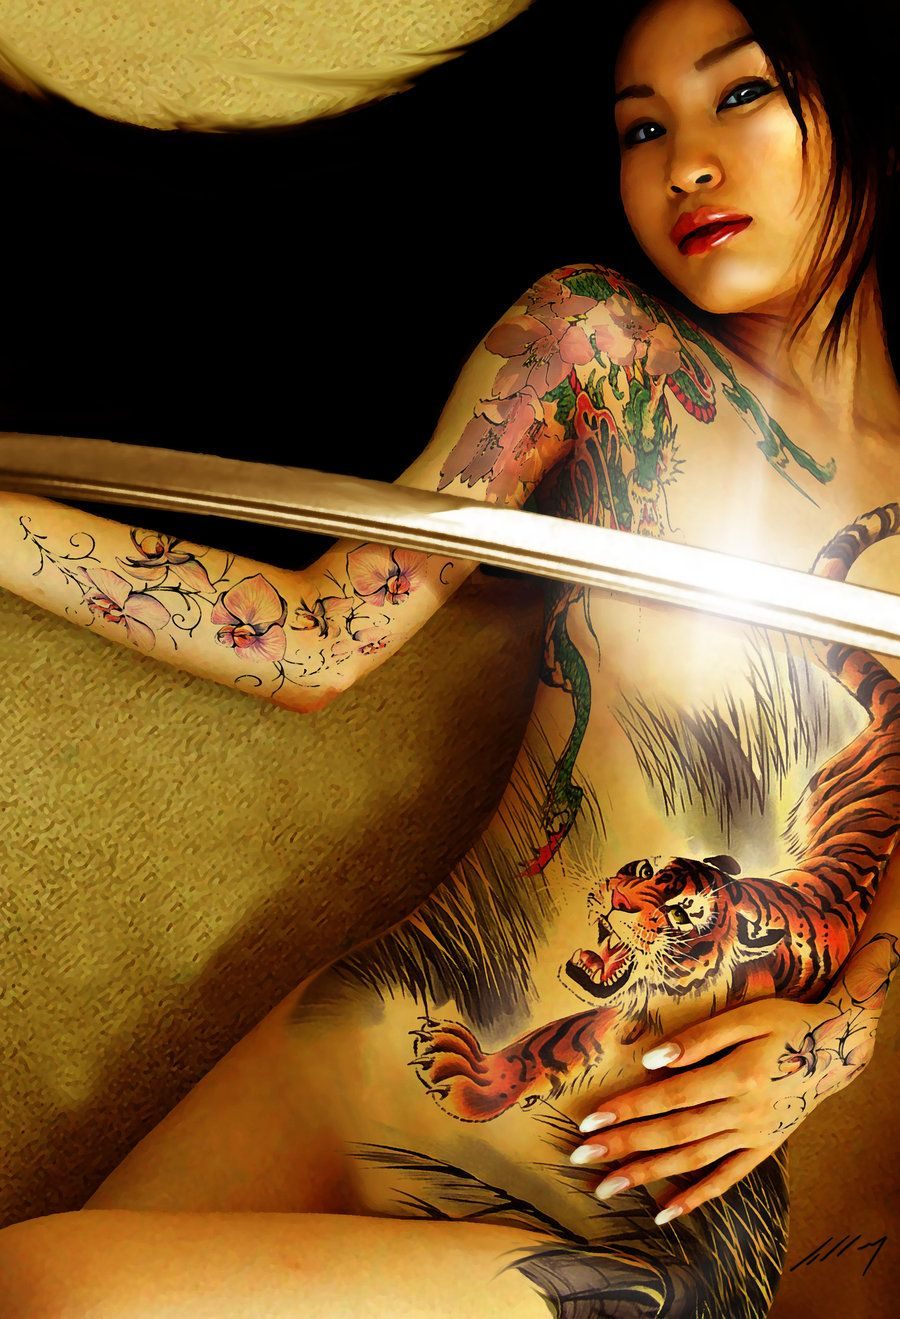 Nude fantasy tattoos for females